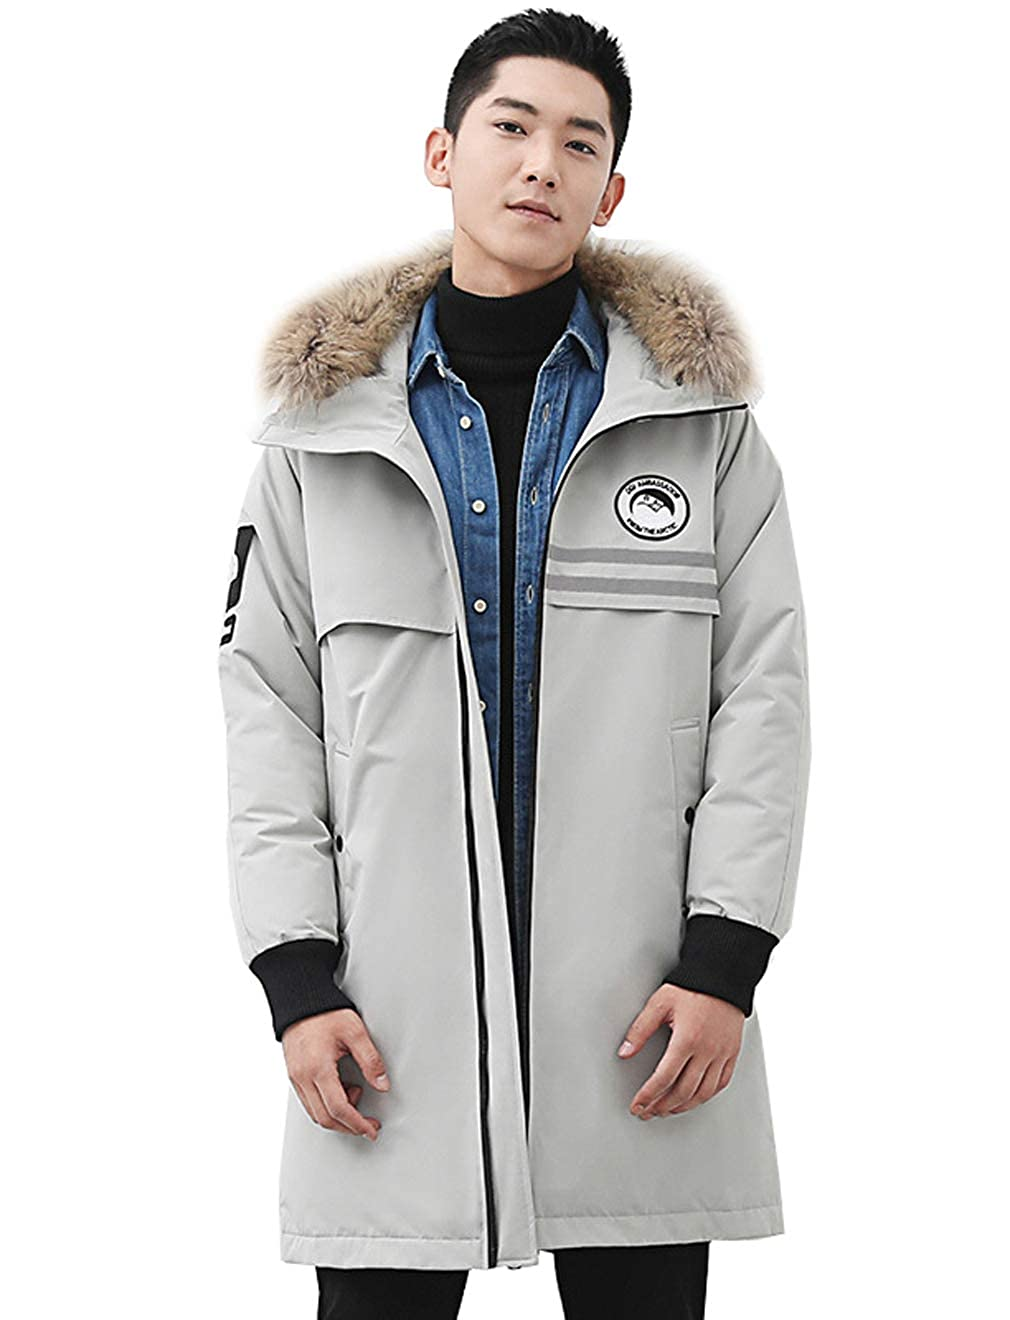 794d58728 Mens Winter Down Jacket Hooded Grey Goose Feather Duck Down at ...